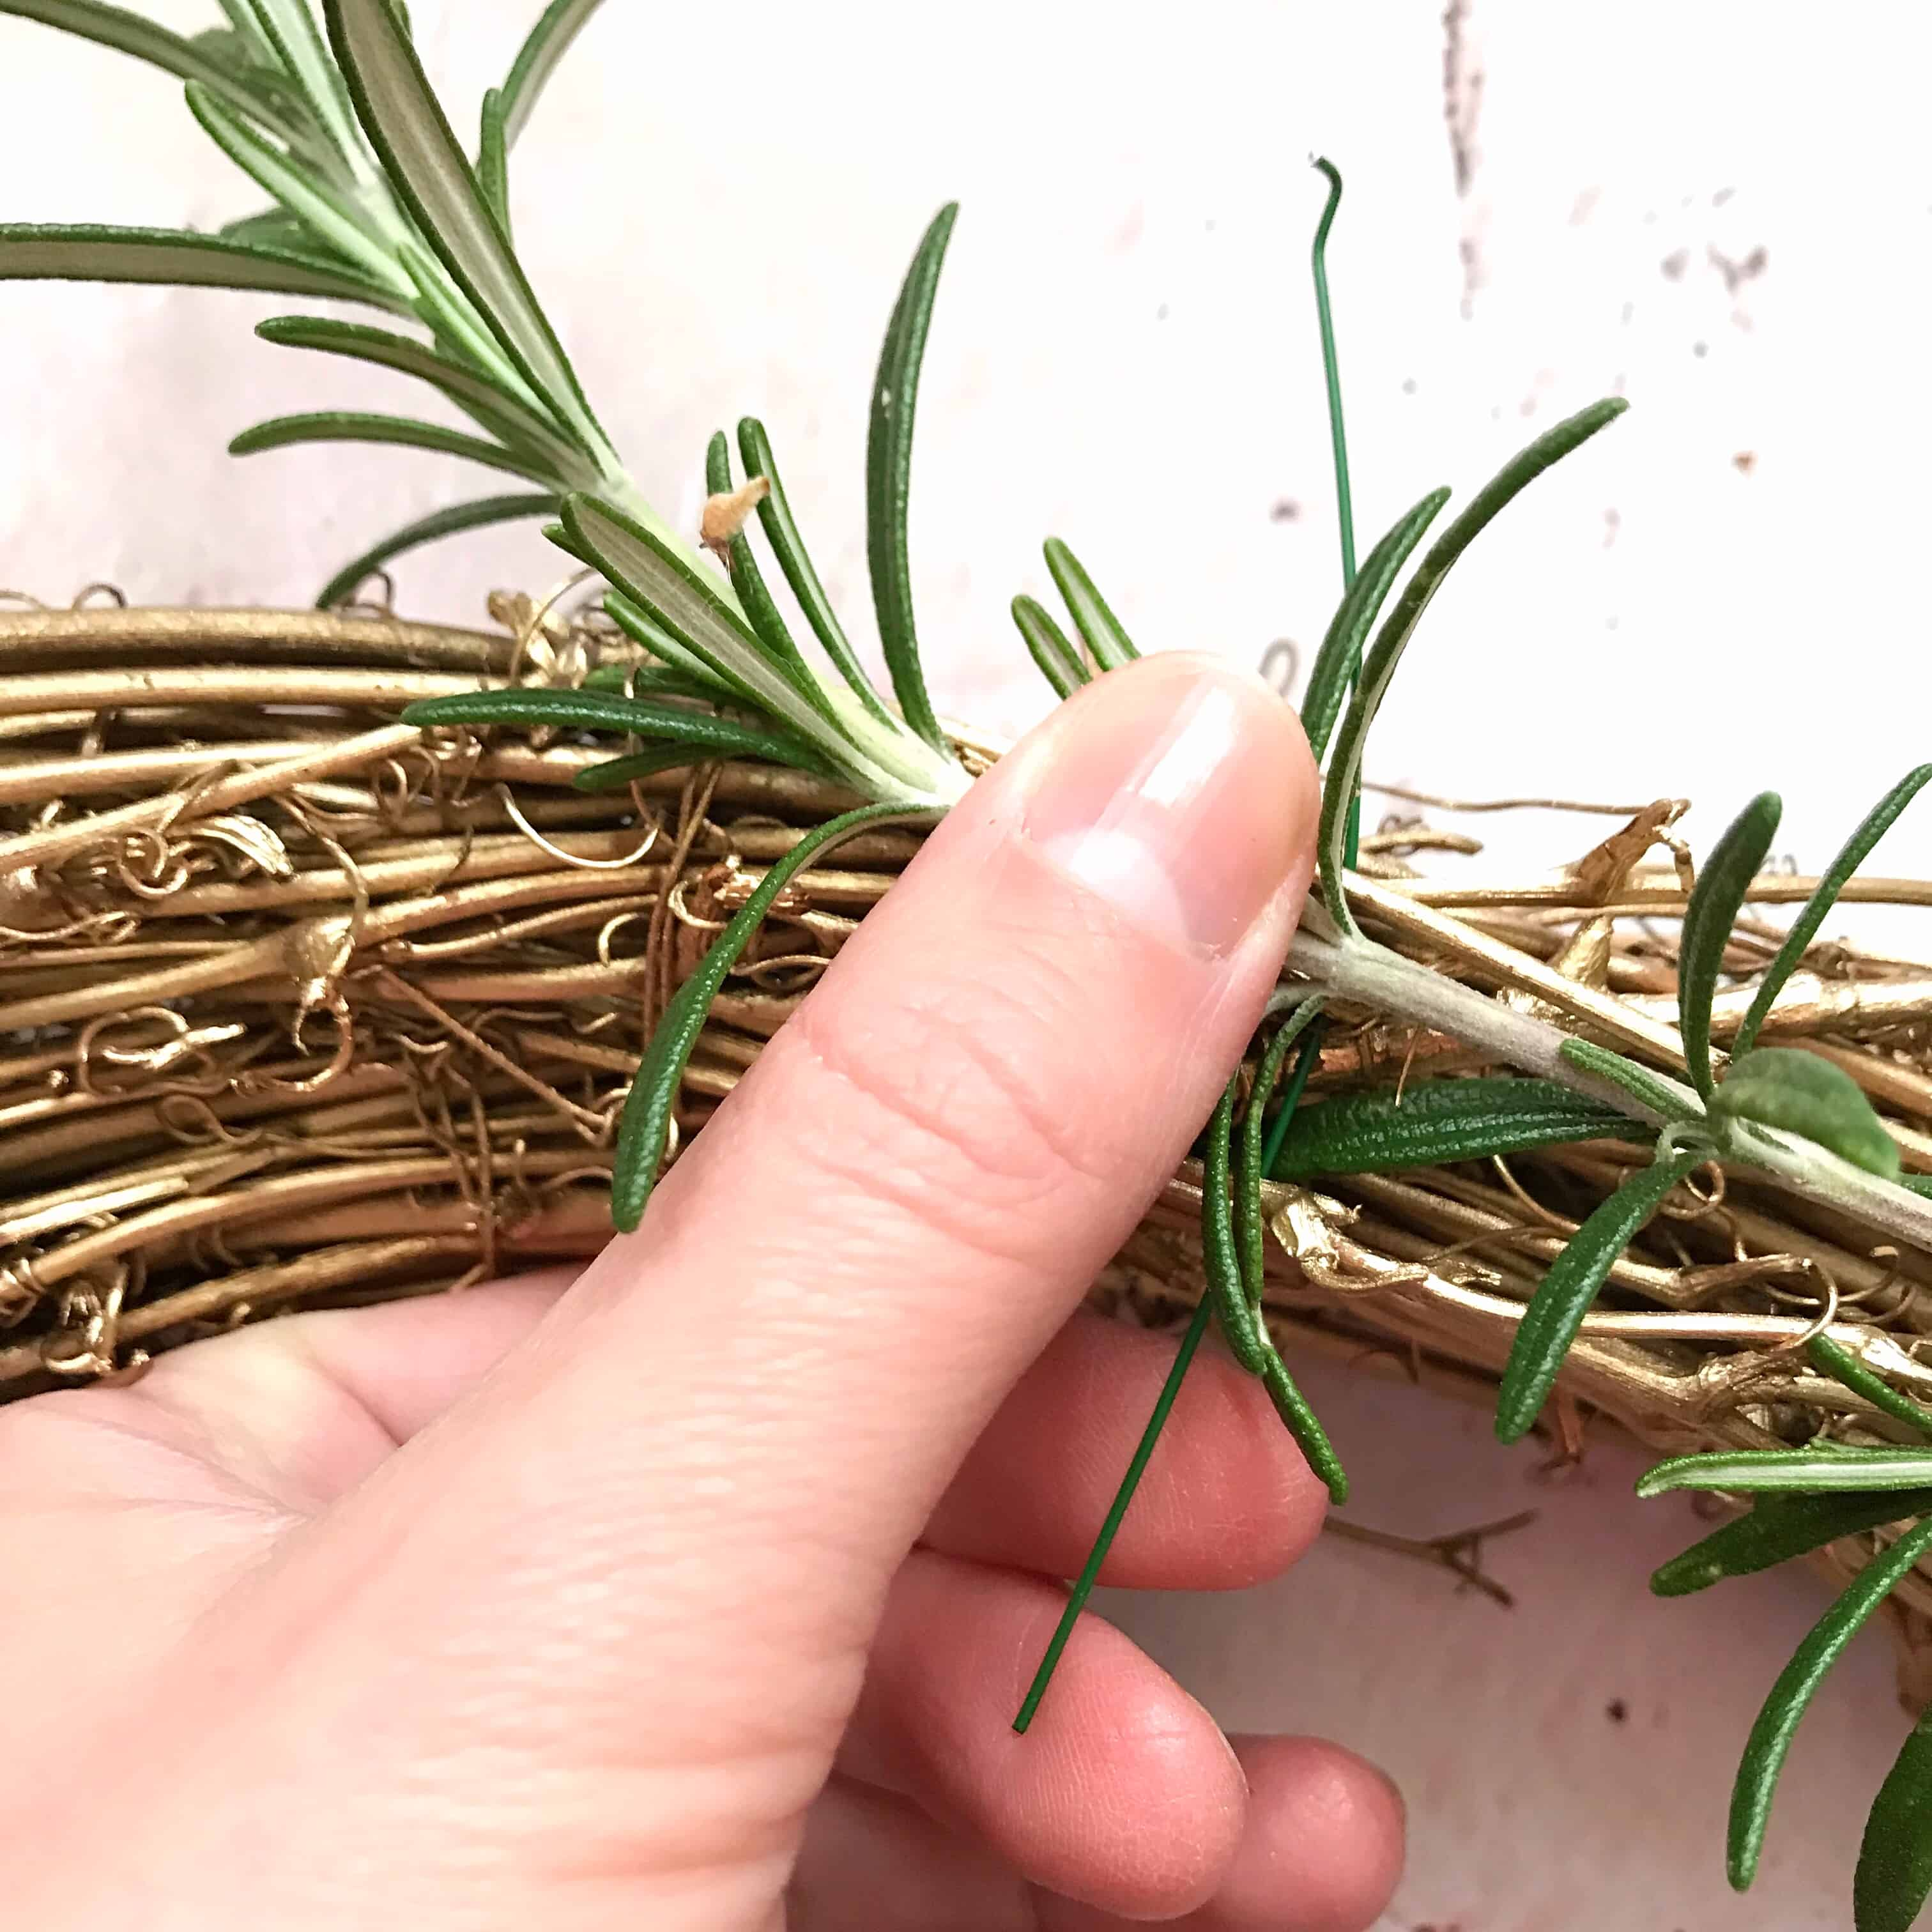 Attach greenery to autumn wreath using floristry wireAttach greenery to autumn wreath using floristry wire